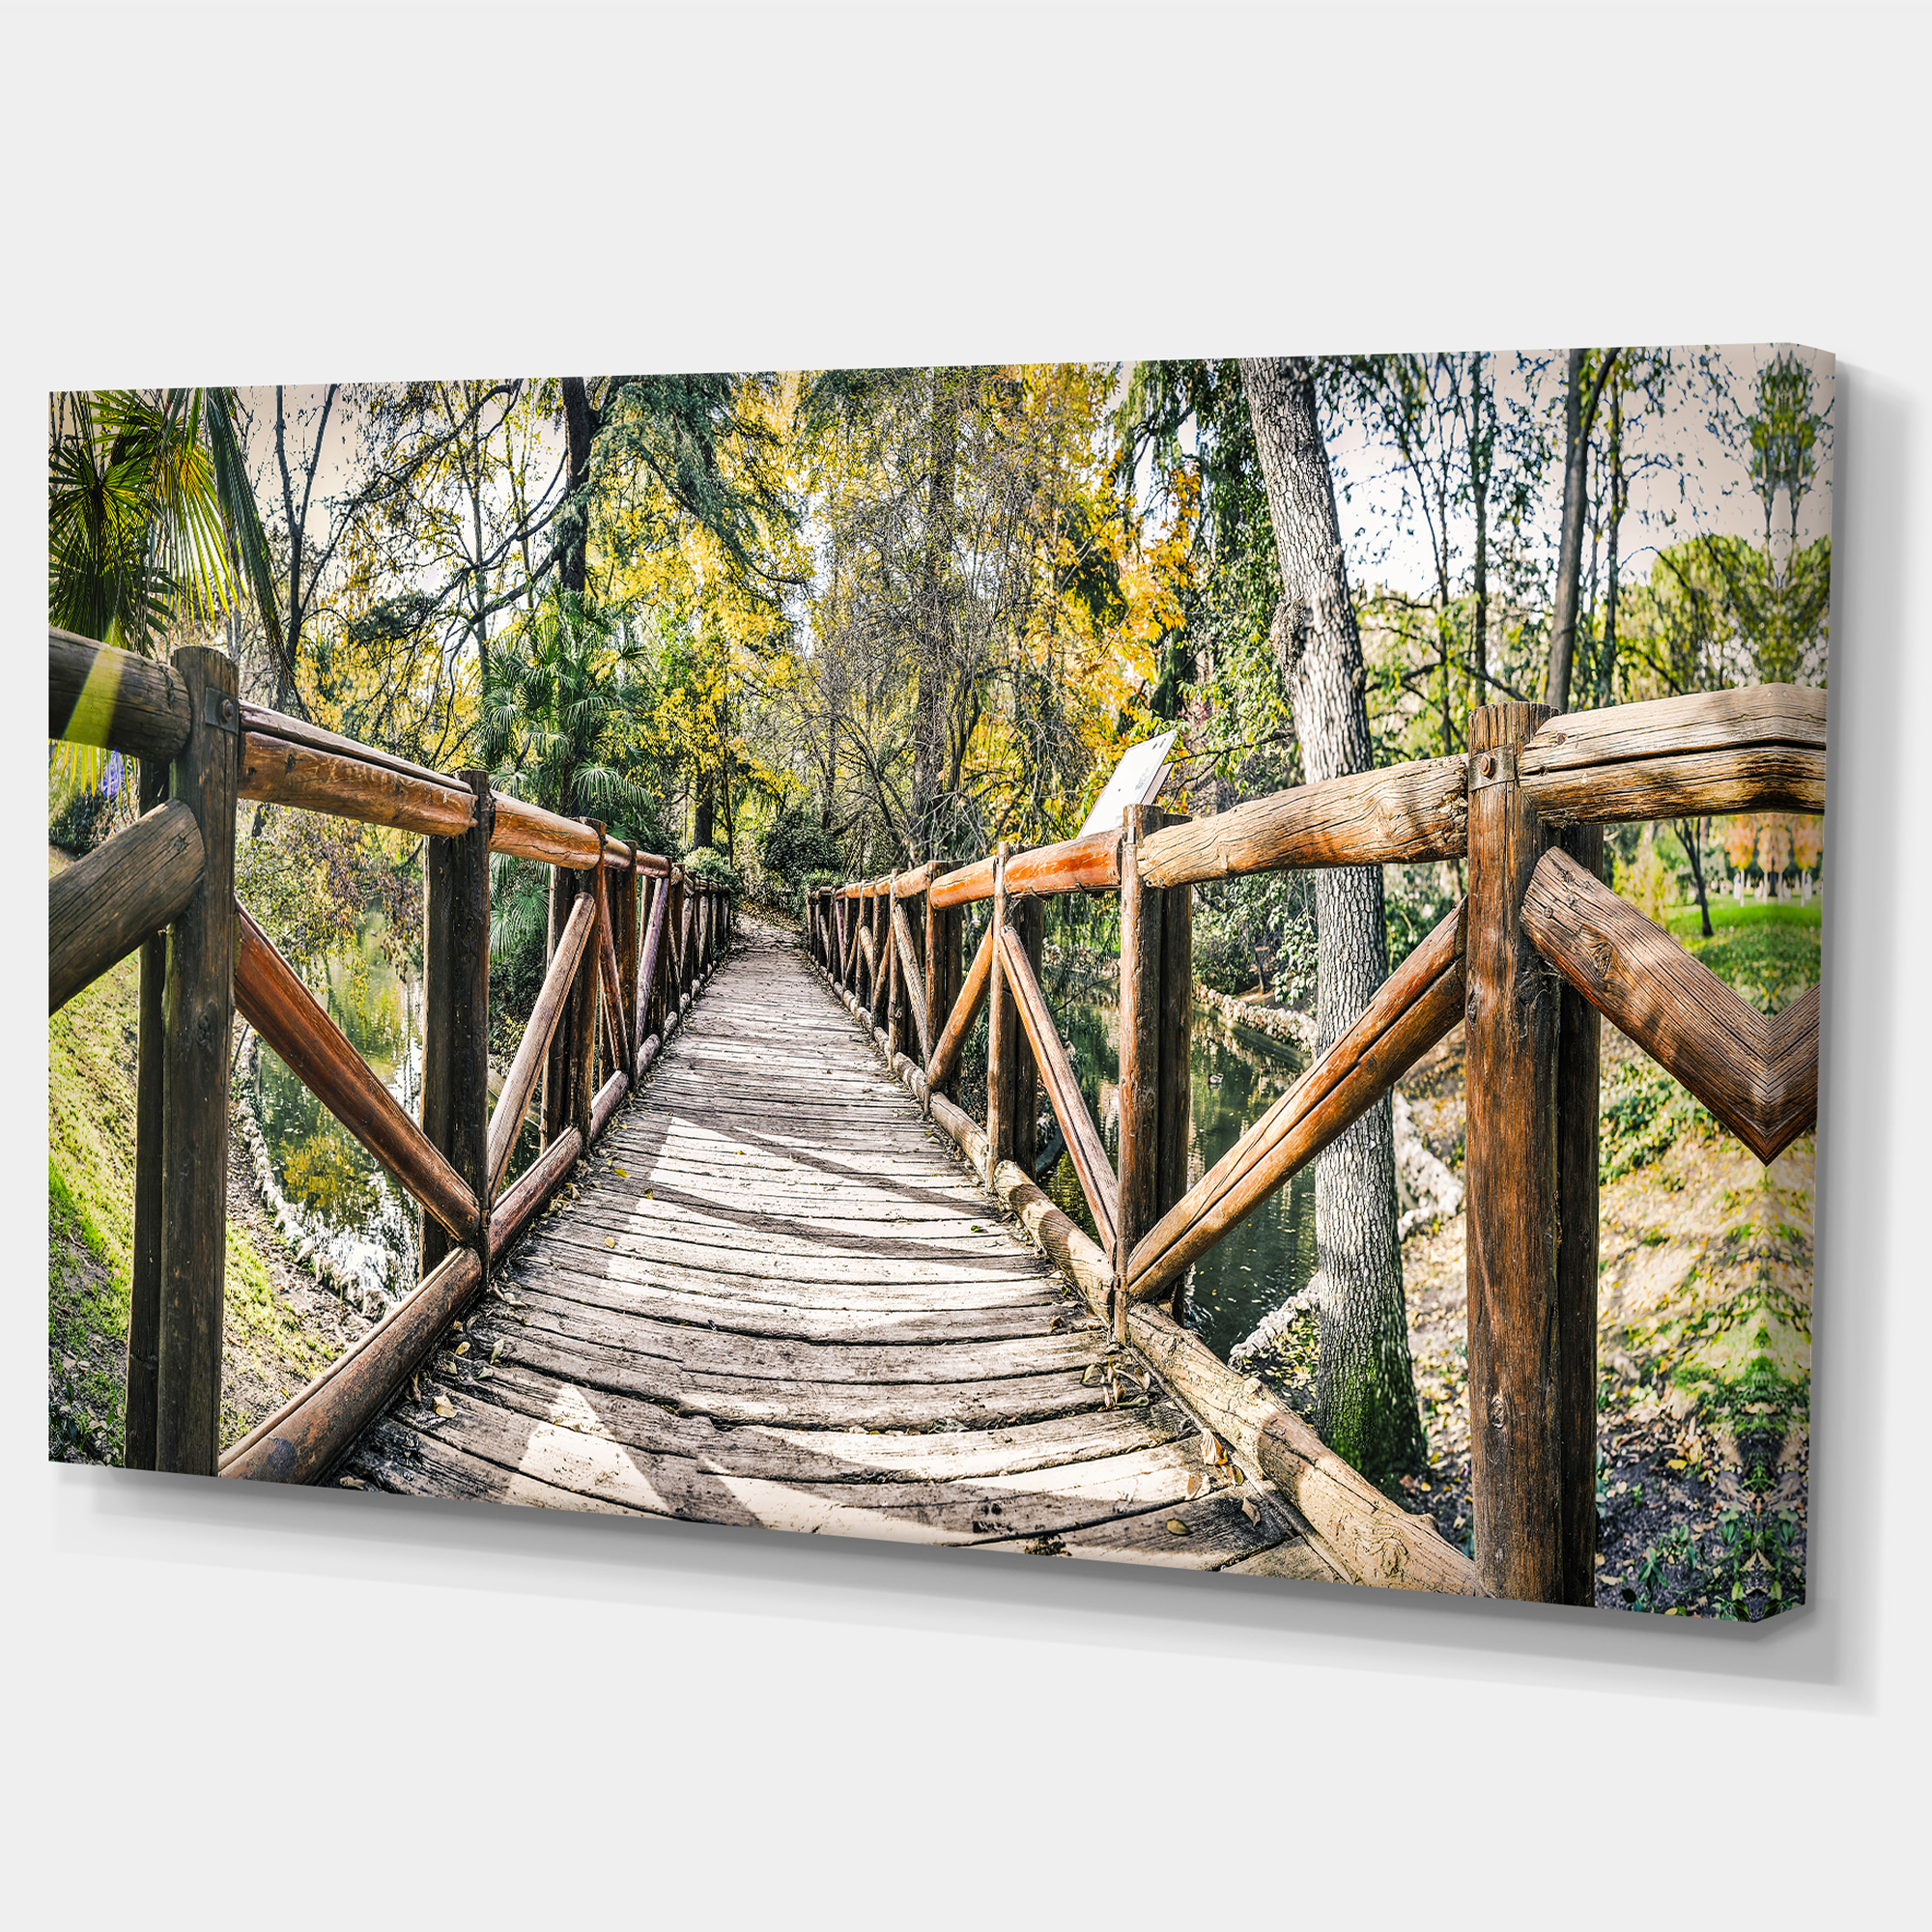 Wooden Bridge in Forest - Wooden Sea Bridge Canvas Wall Art on long bridge, tree bridge, simple bridge, concord, ontario, farm bridge, popsicle stick bridge, dina pugliese, king city, cantilever bridge, swing bridge, elizabeth arden, stone bridge, truck going under bridge, maple, ontario, brick bridge, plank bridge, waterfall bridge, troll bridge, beam bridge, humber river,